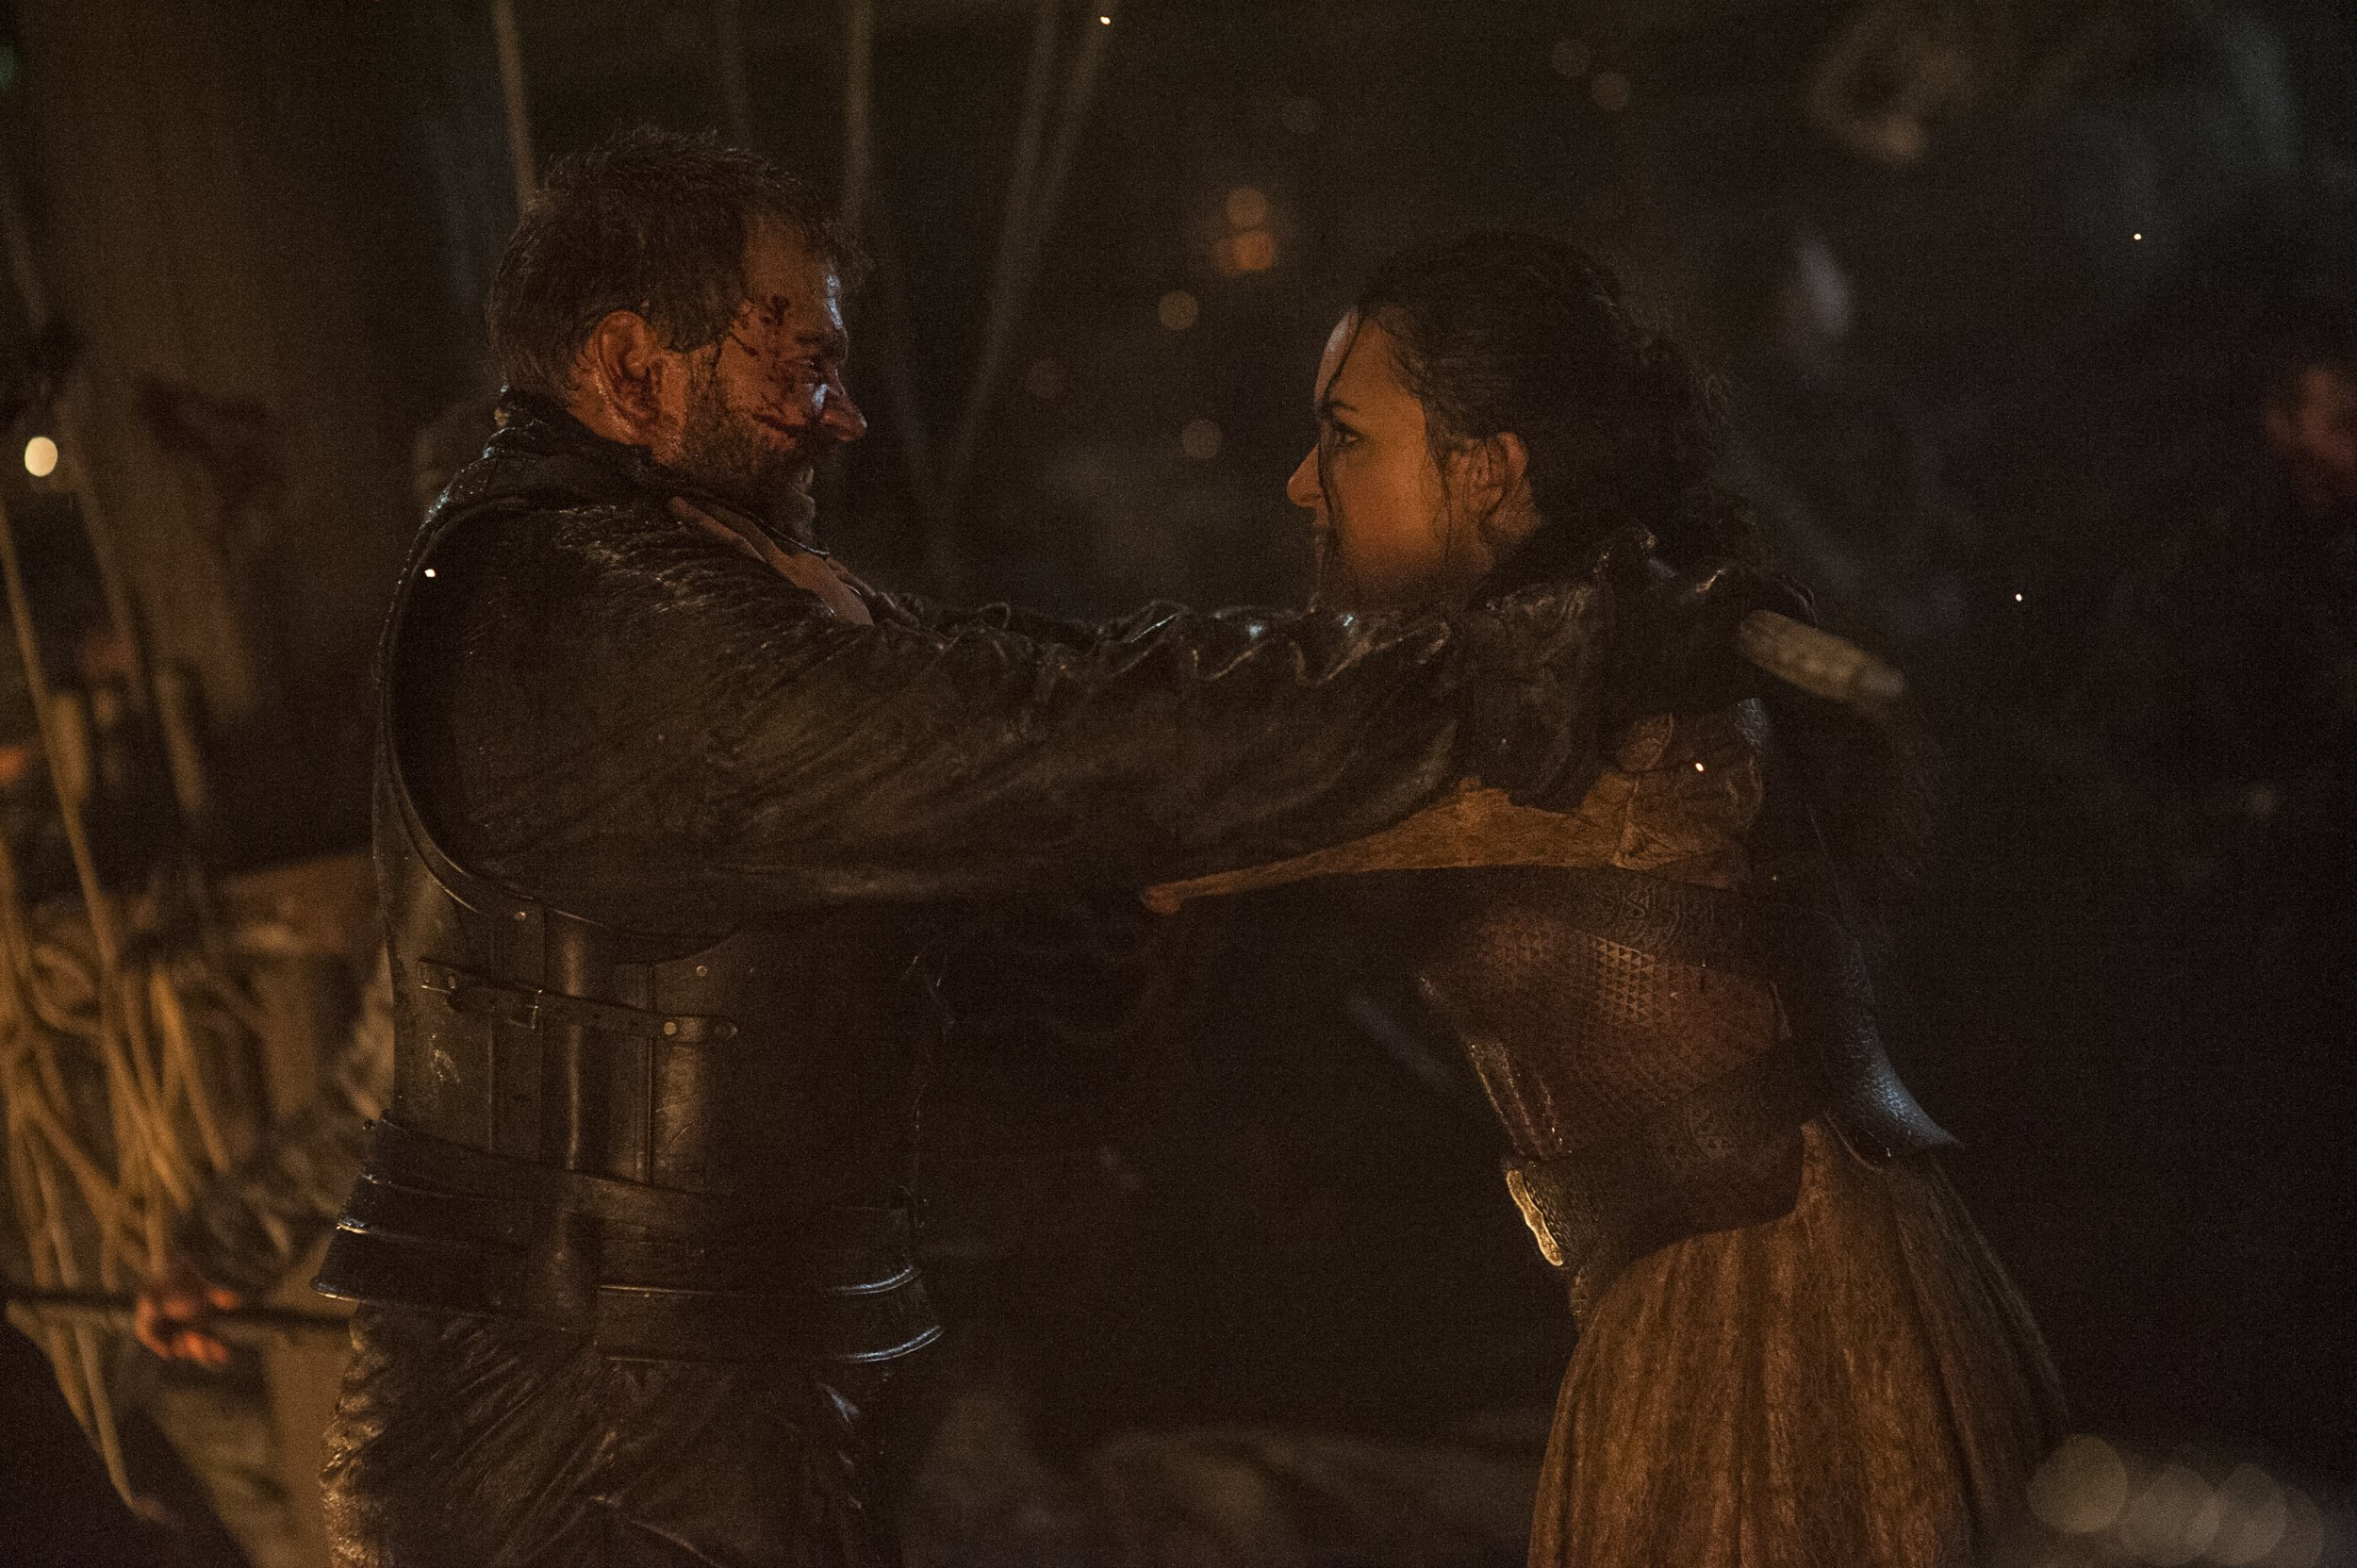 Pakistan Army Girl Wallpapers Game Of Thrones Is Euron Greyjoy More Evil Than Ramsay